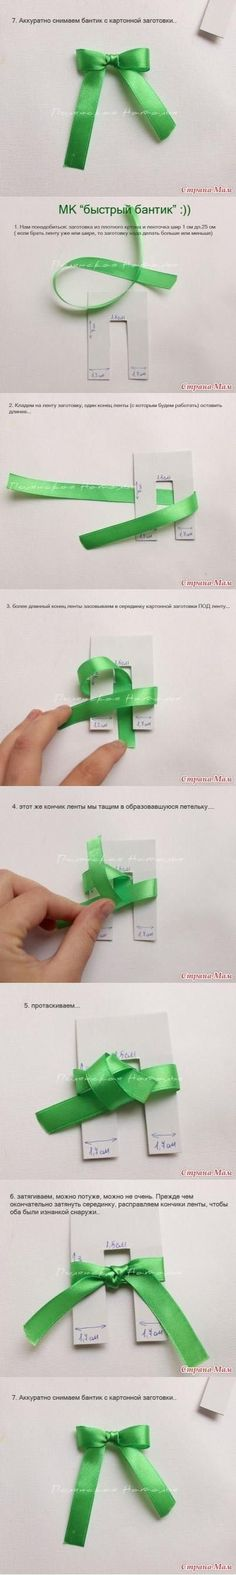 Beautiful Green Bow | DIY & Crafts Tutorials